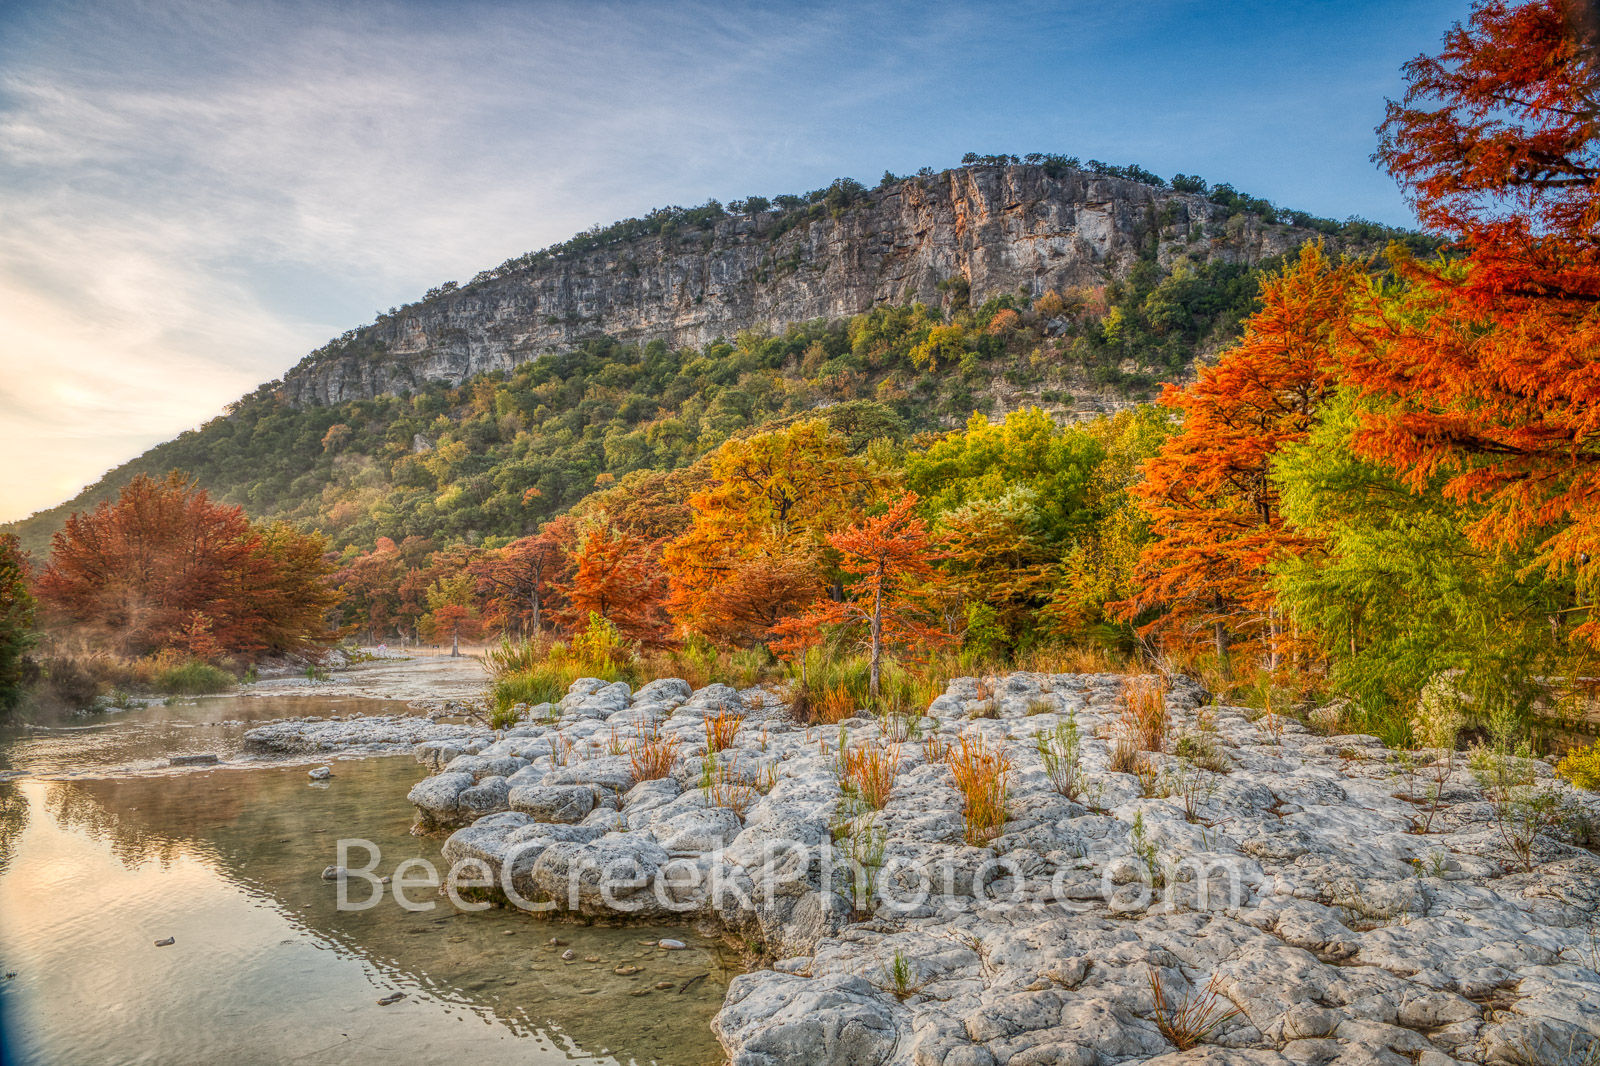 Old Baldy Fall Colors - We capture this downstream image of Old Baldy as the Frio river flows down over the rocks toward Ulvalde...